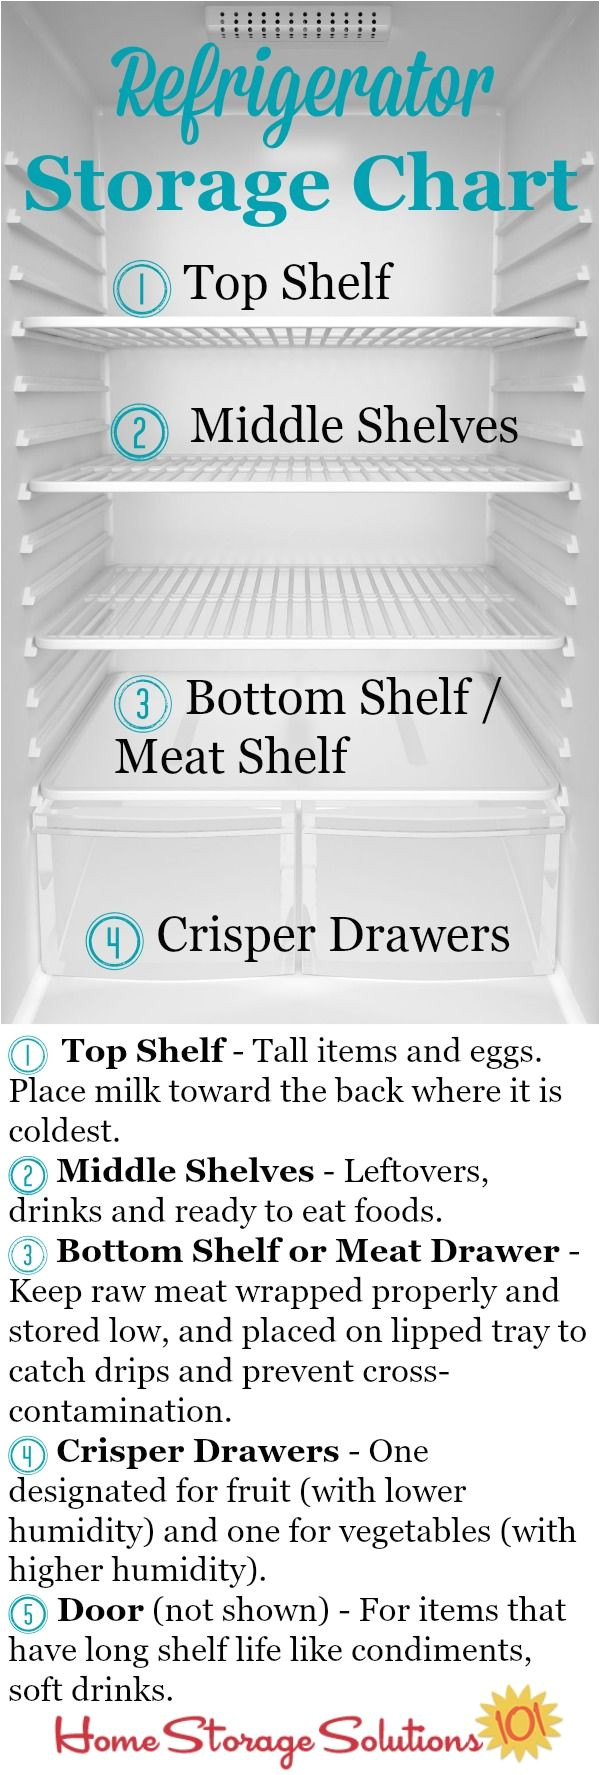 refrigerator storage chart guidelines where to place your food in your fridge